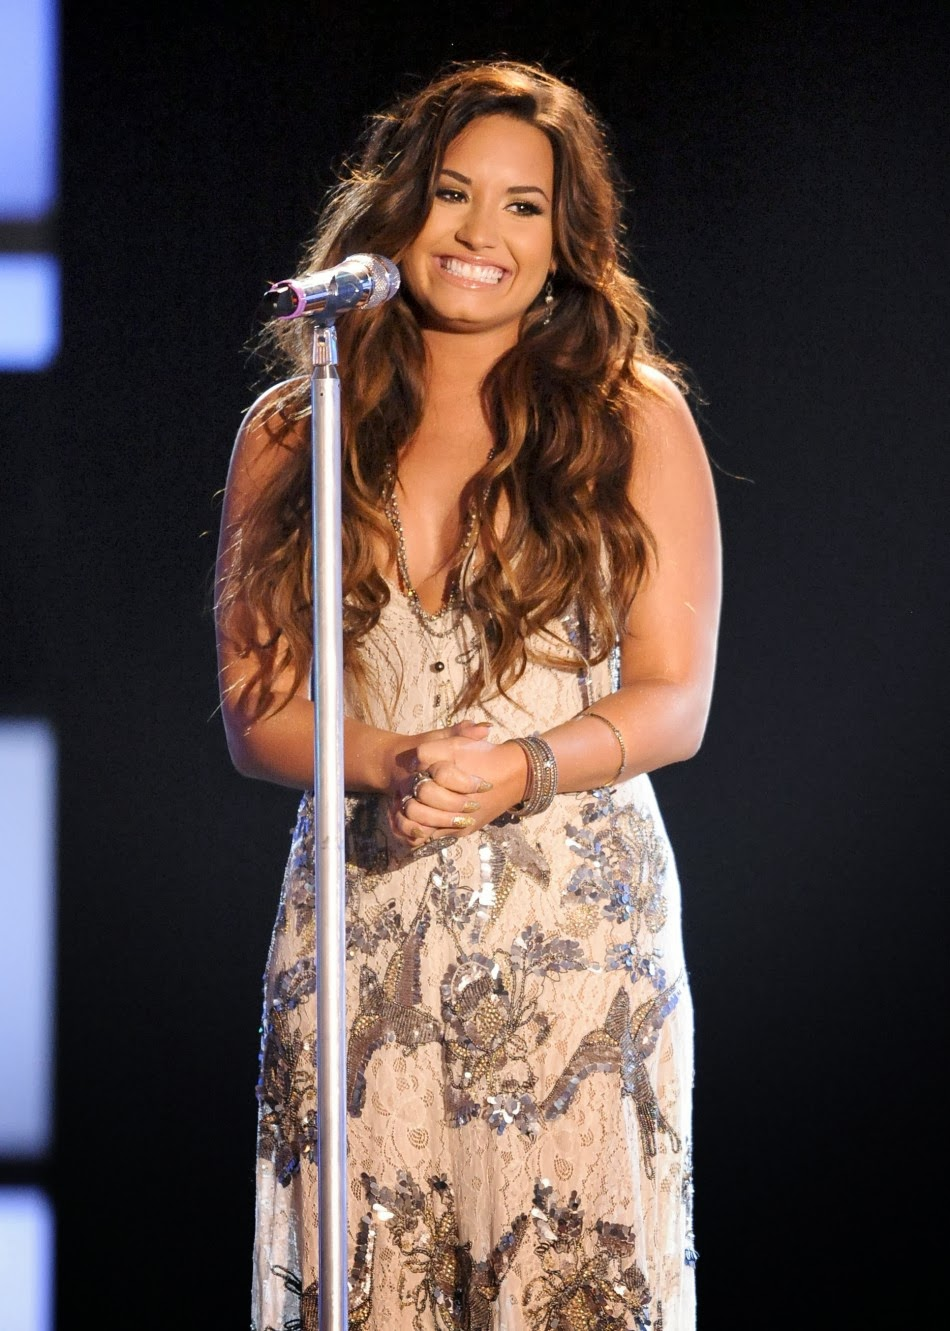 A Blog About girls and fashion pictures: Demi Lovato ...